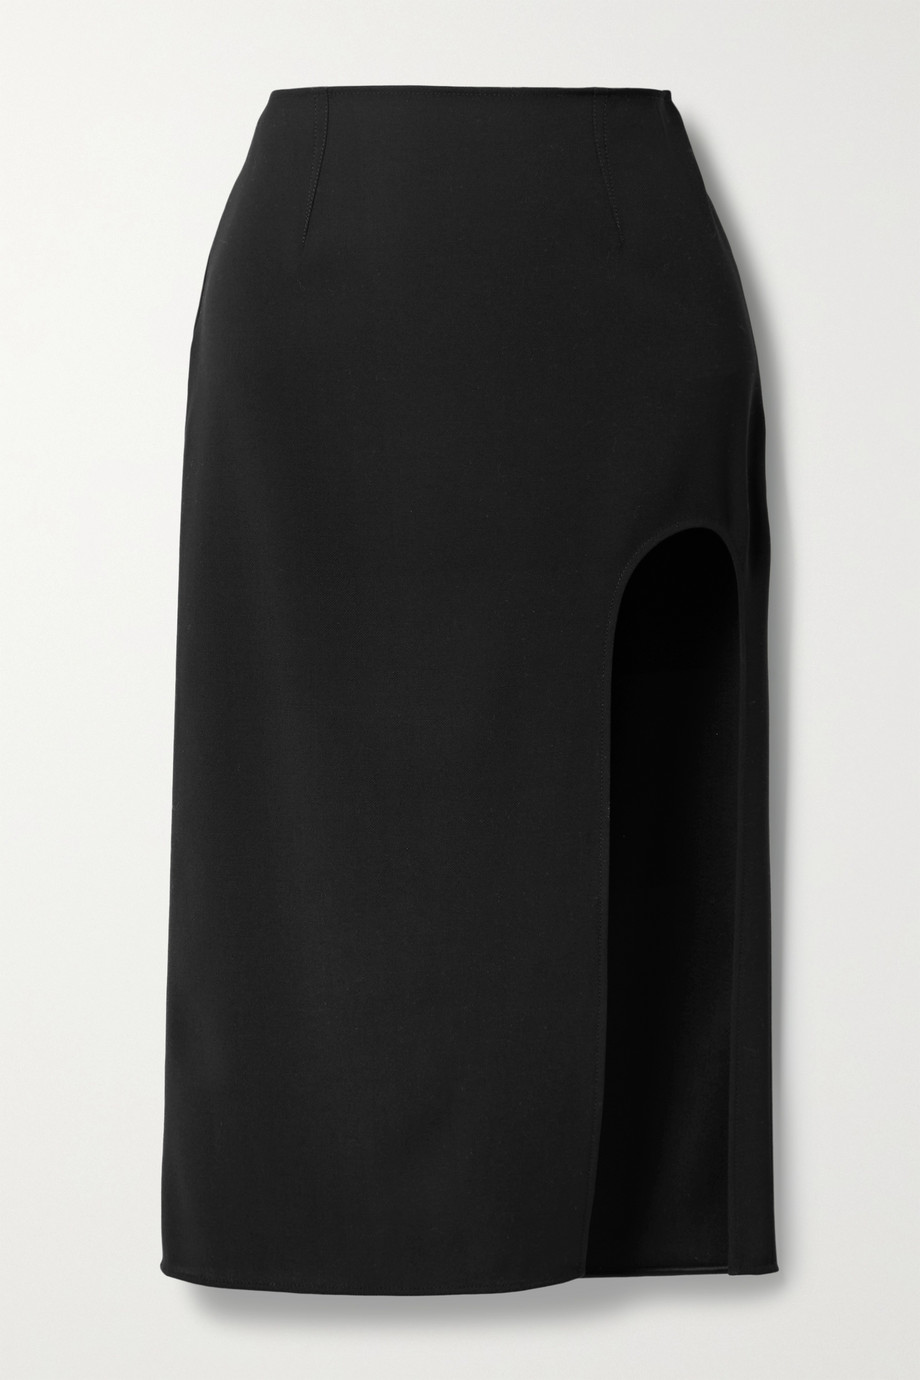 MUGLER Cutout wool-twill skirt